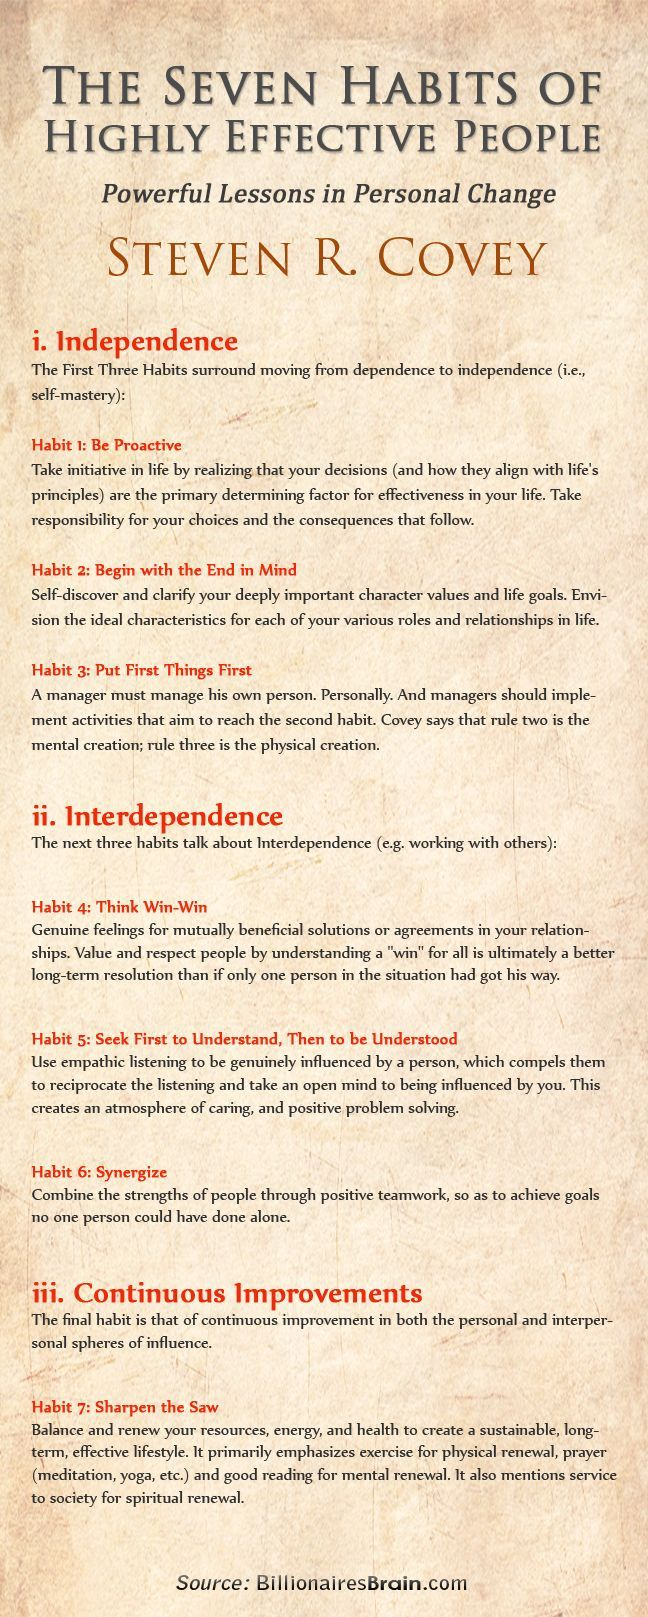 """The Seven Habits of Highly Effective People ~   Steven R. CoveyCovey presents an approach to being effective in attaining goals by aligning oneself to what he calls """"true north"""" principles of a character ethic that he presents as universal and timeless. thebreakthroughspot.com/"""